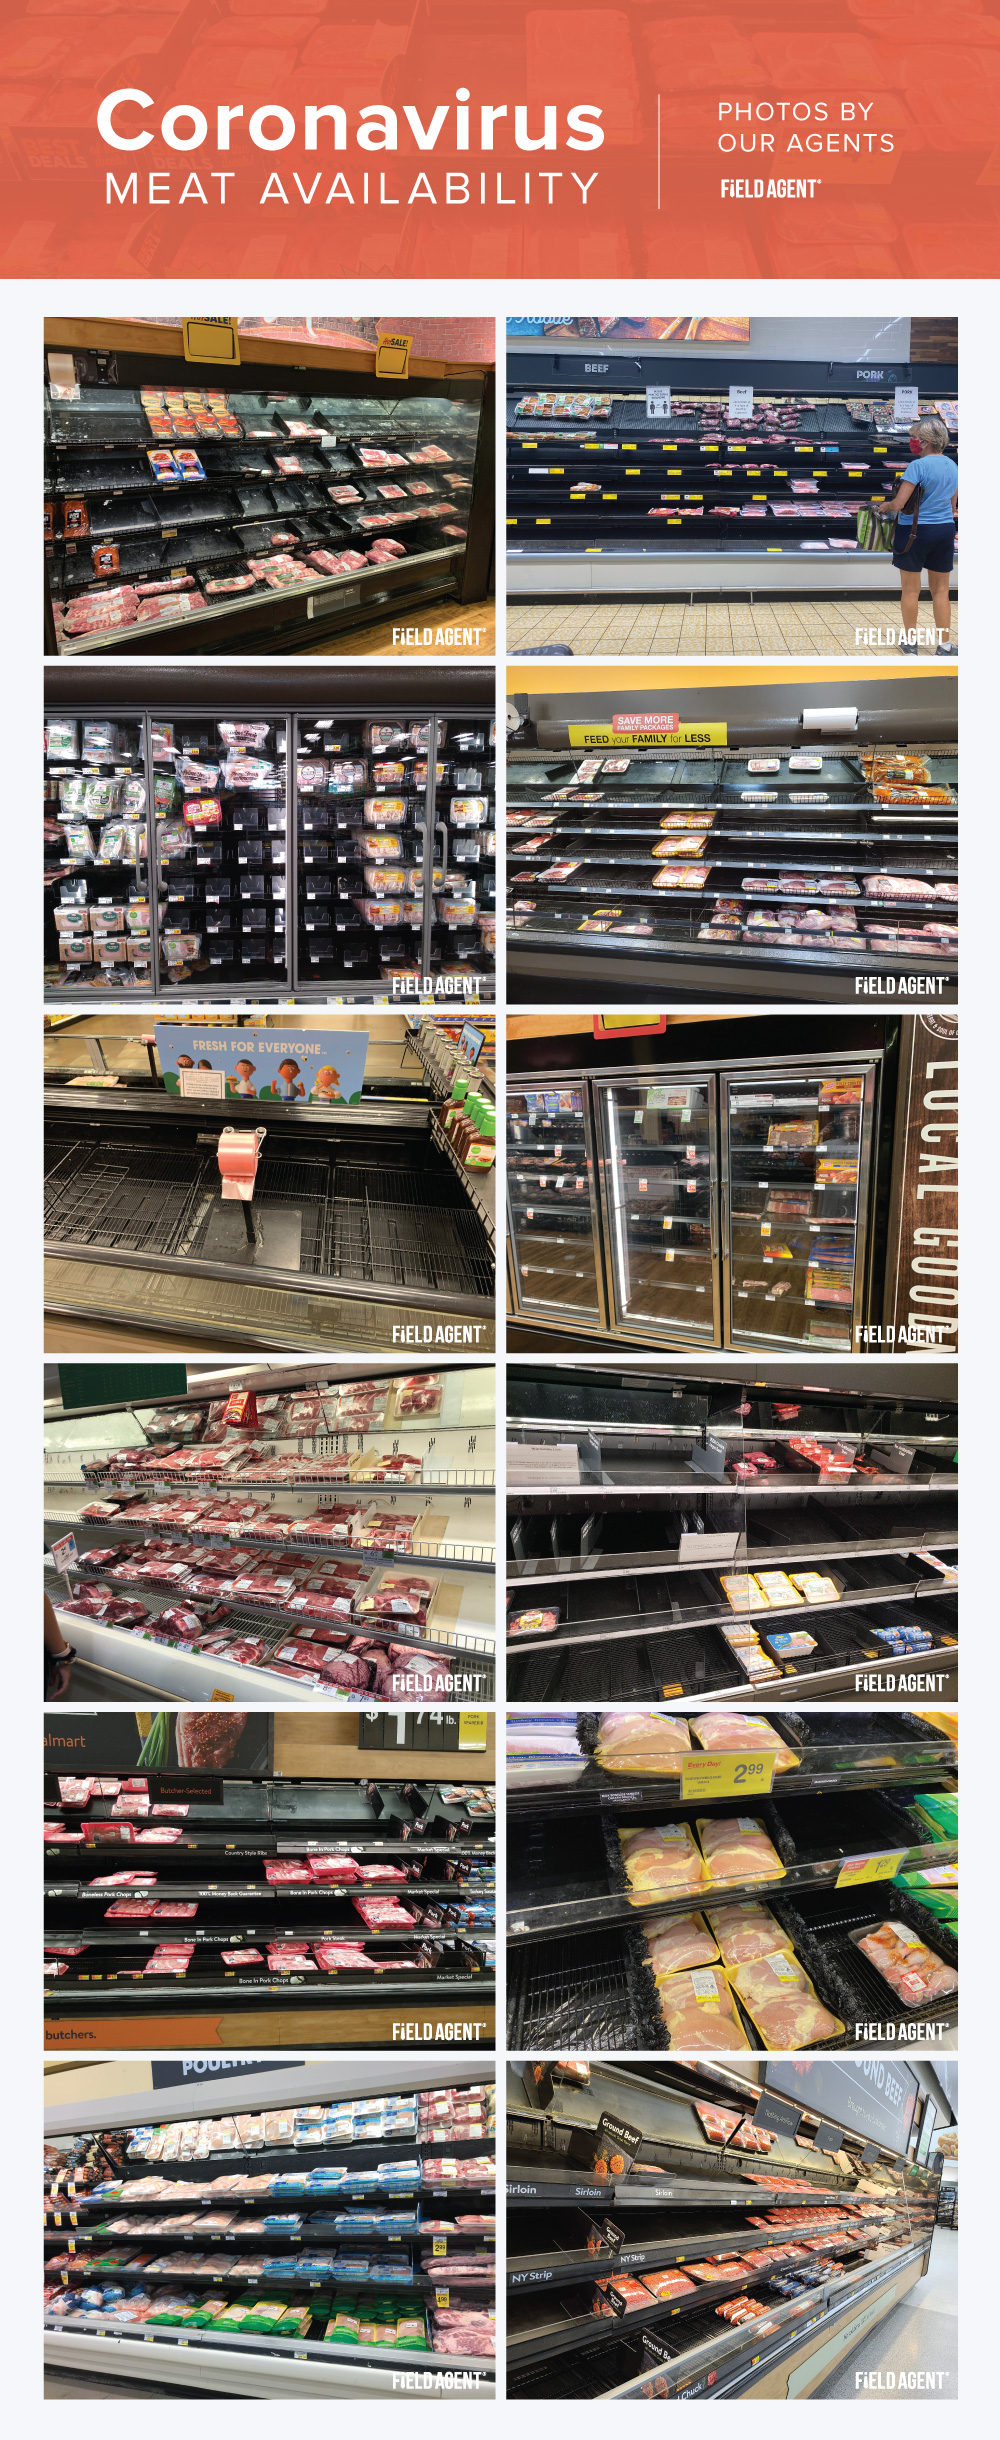 Coronavirus Meat-Shortages Agent Photo Gallery